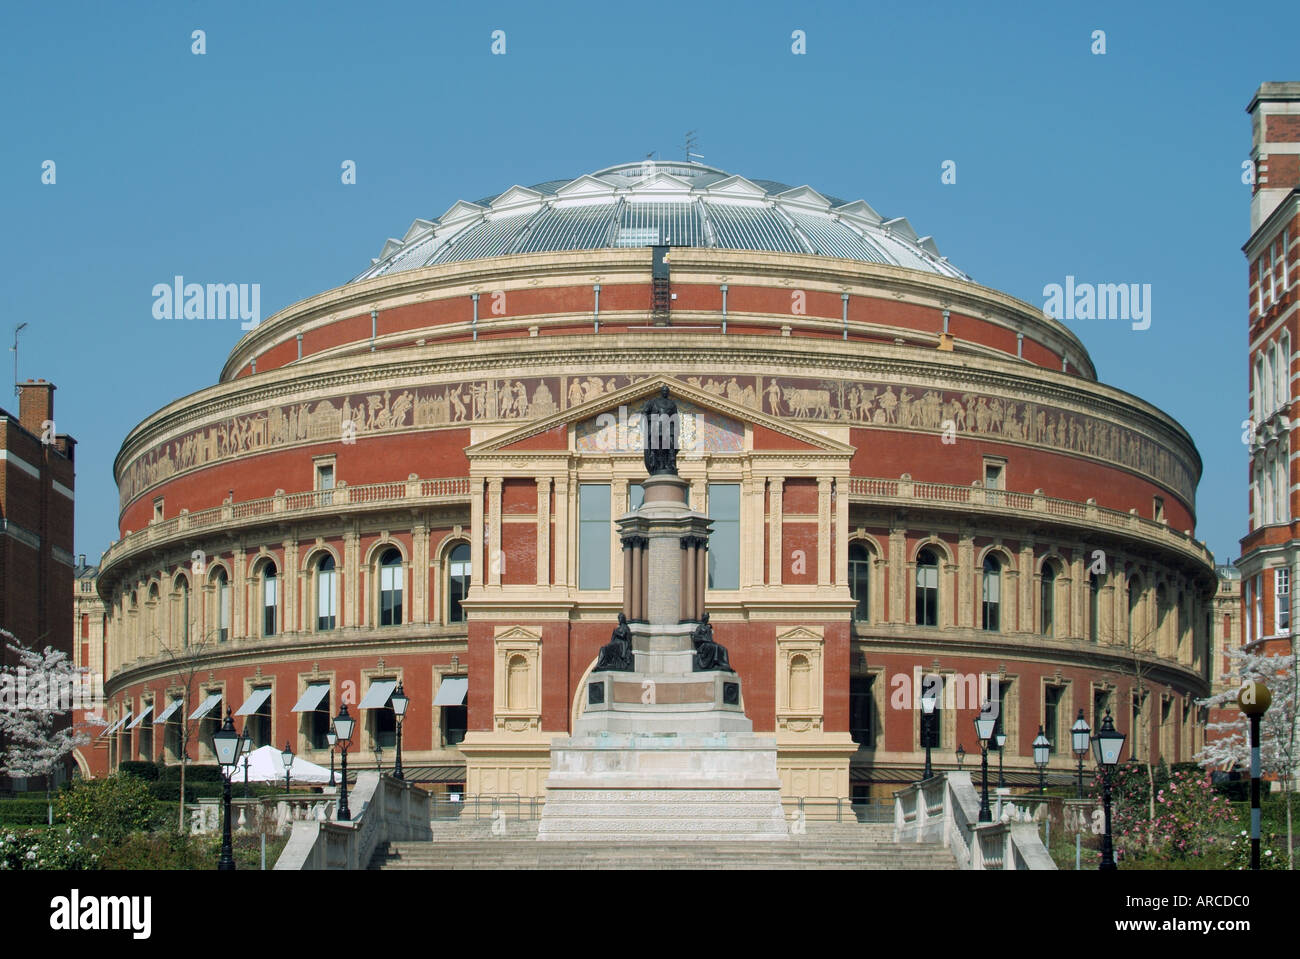 Royal Albert Hall concert hall façade sud South Kensington London England UK Banque D'Images